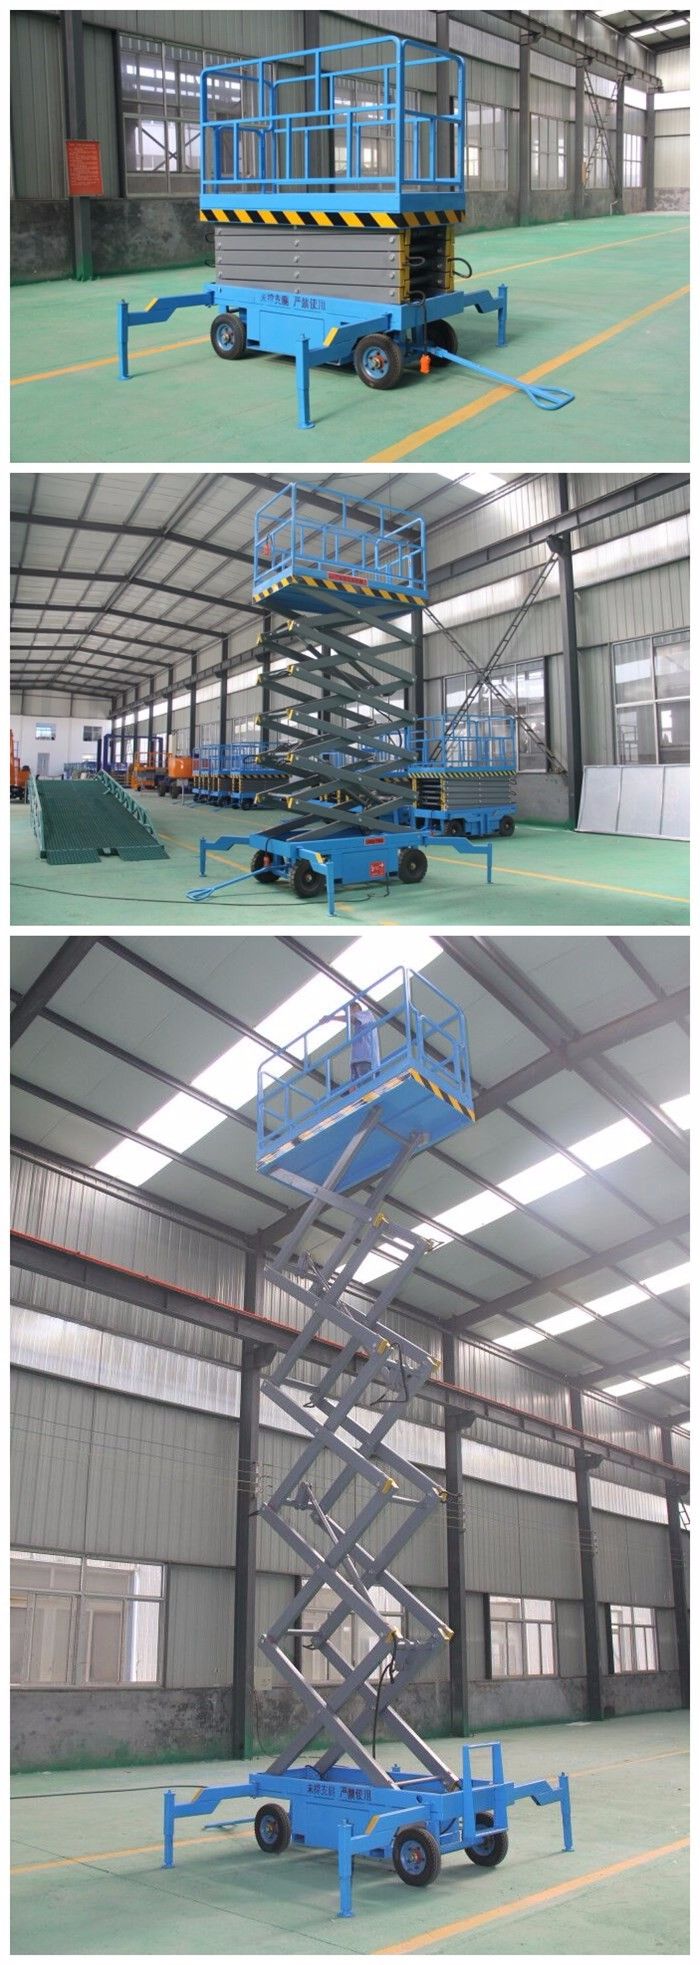 Scissor lifting table scissor type man lifts for aerial working